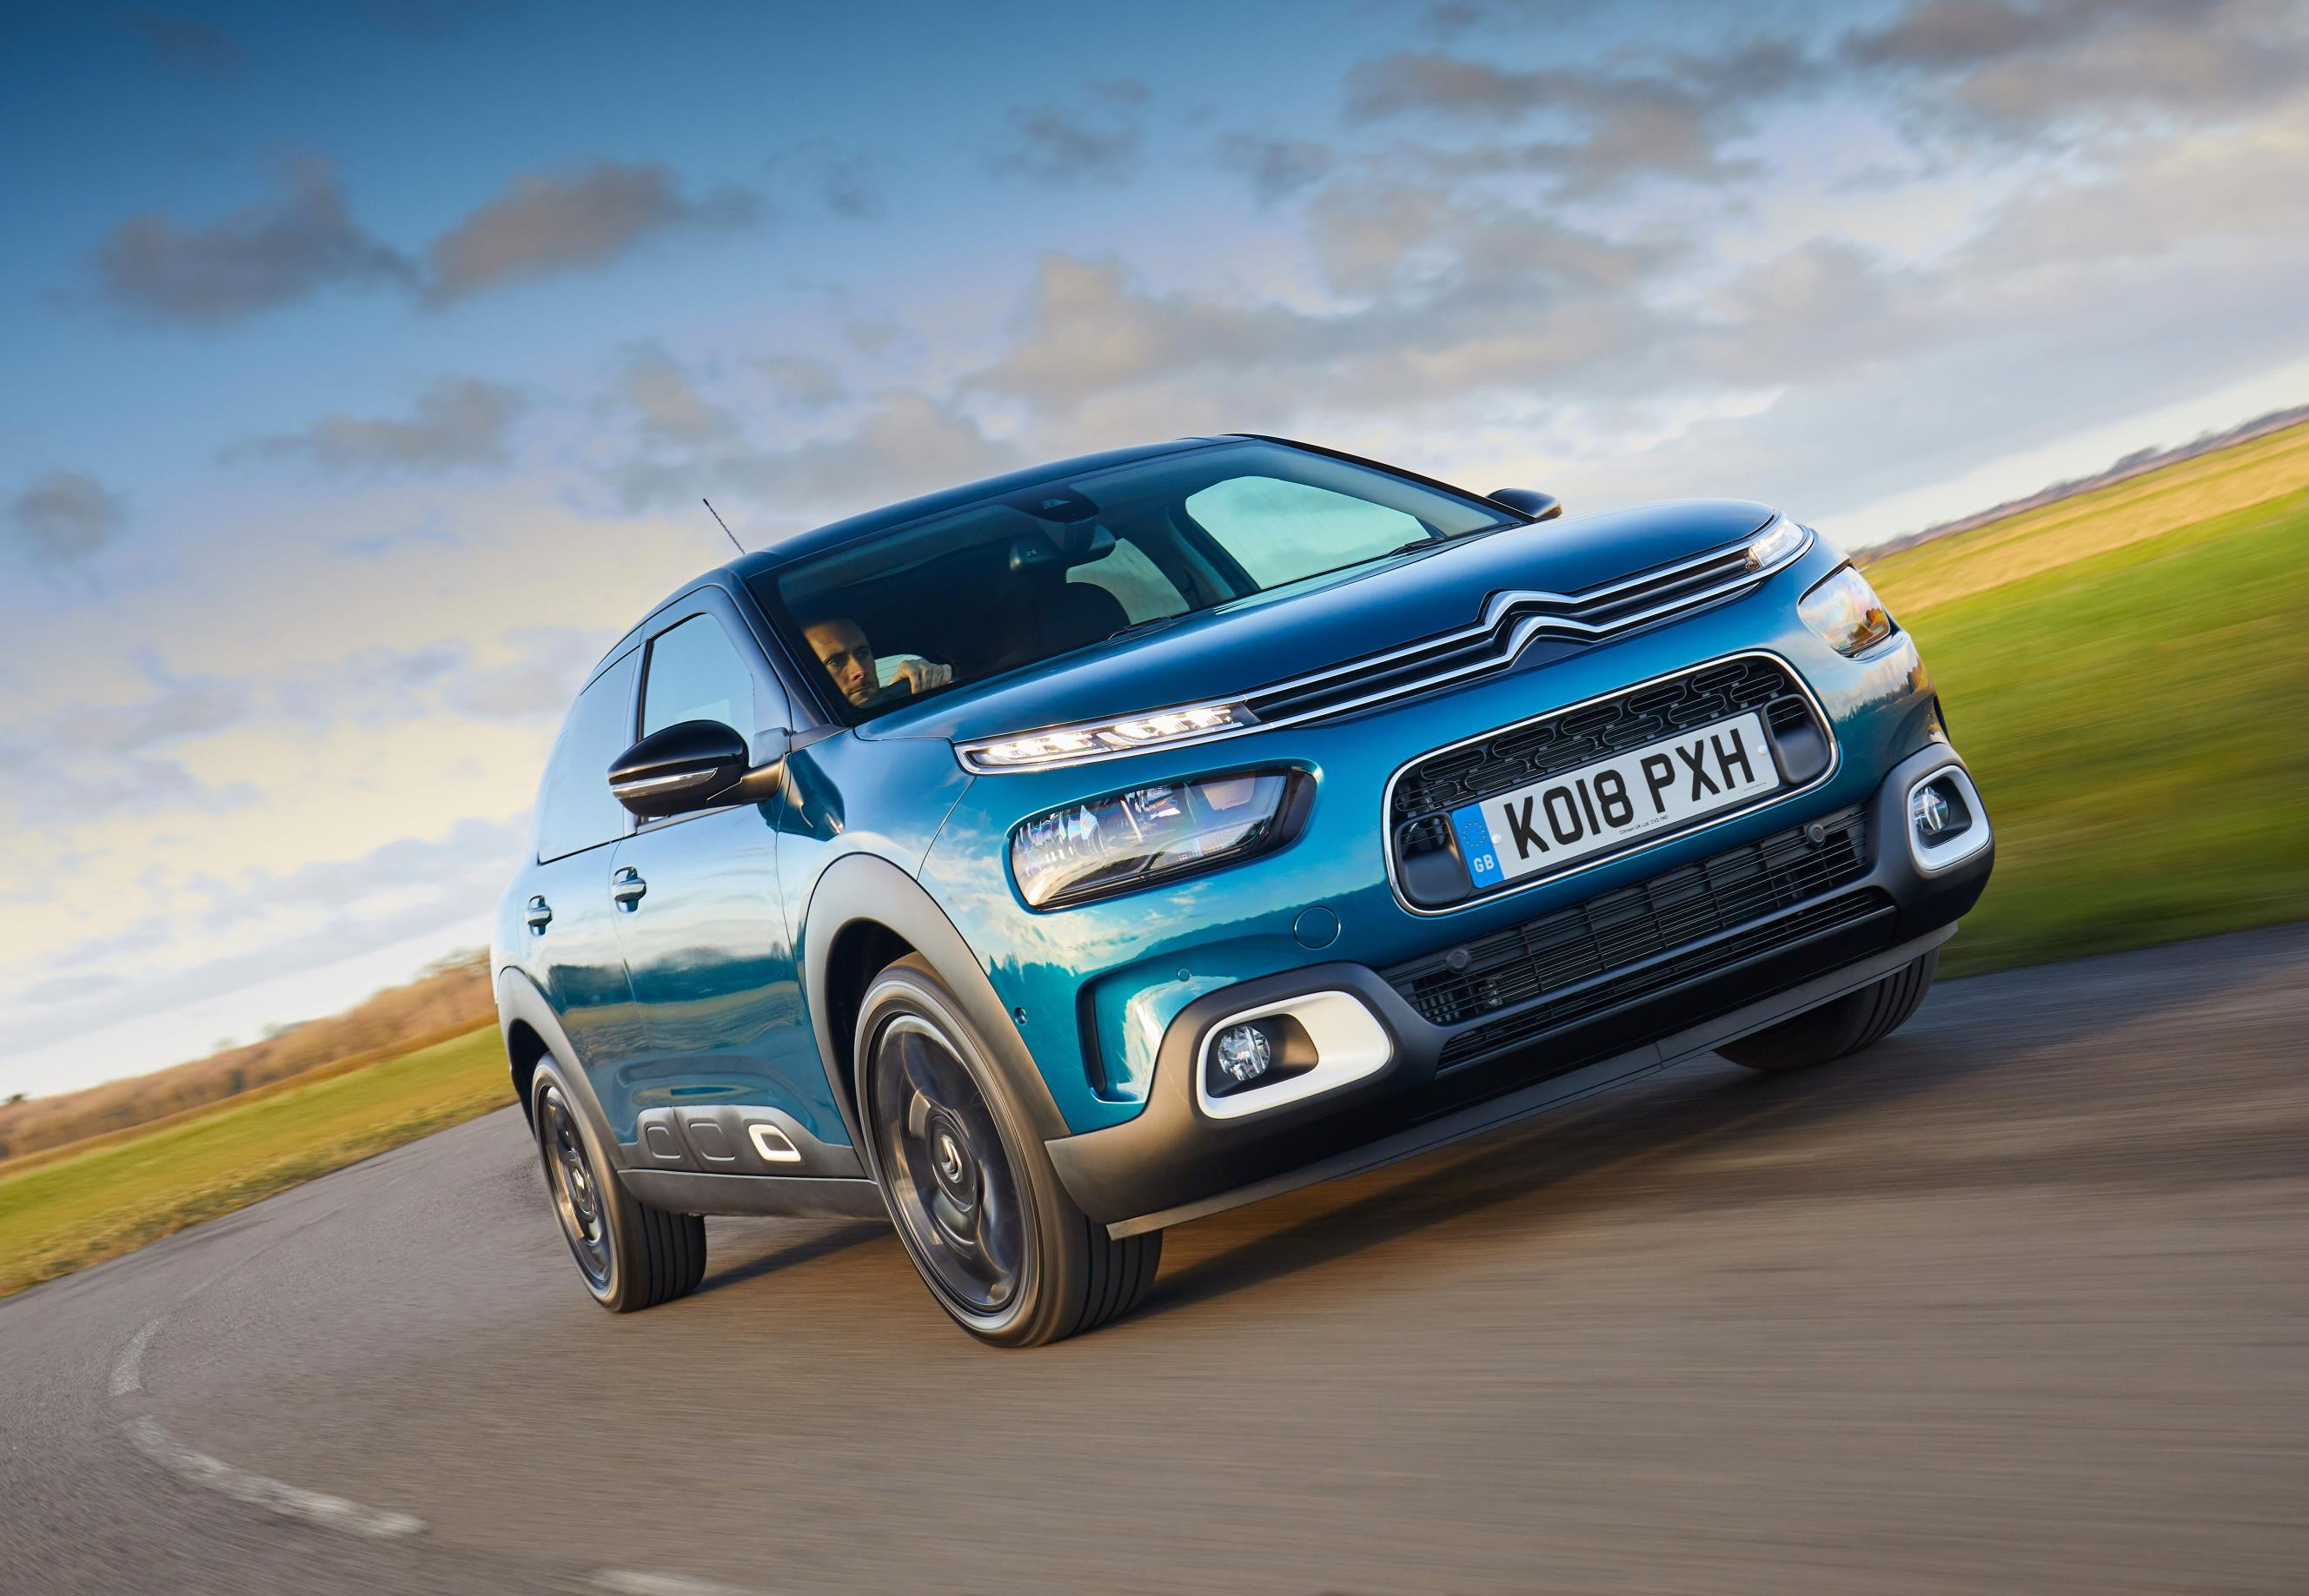 Bright blue metallic Citroen C4 Cactus driving towards you very close up